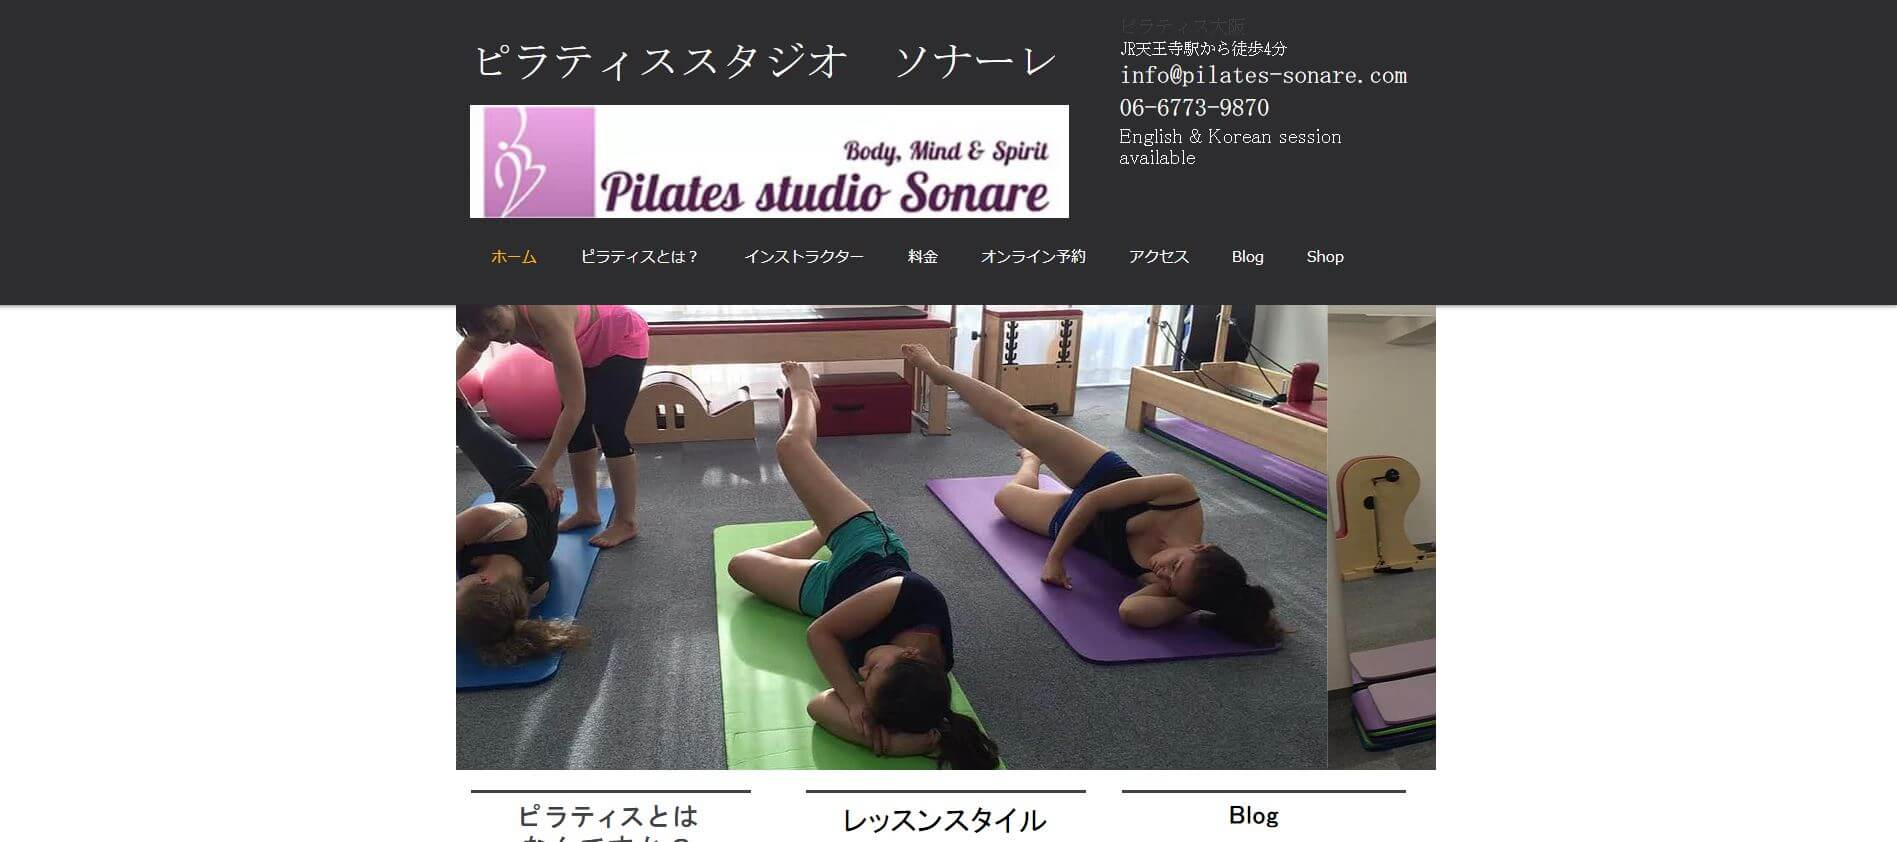 Pilates studio Sonare